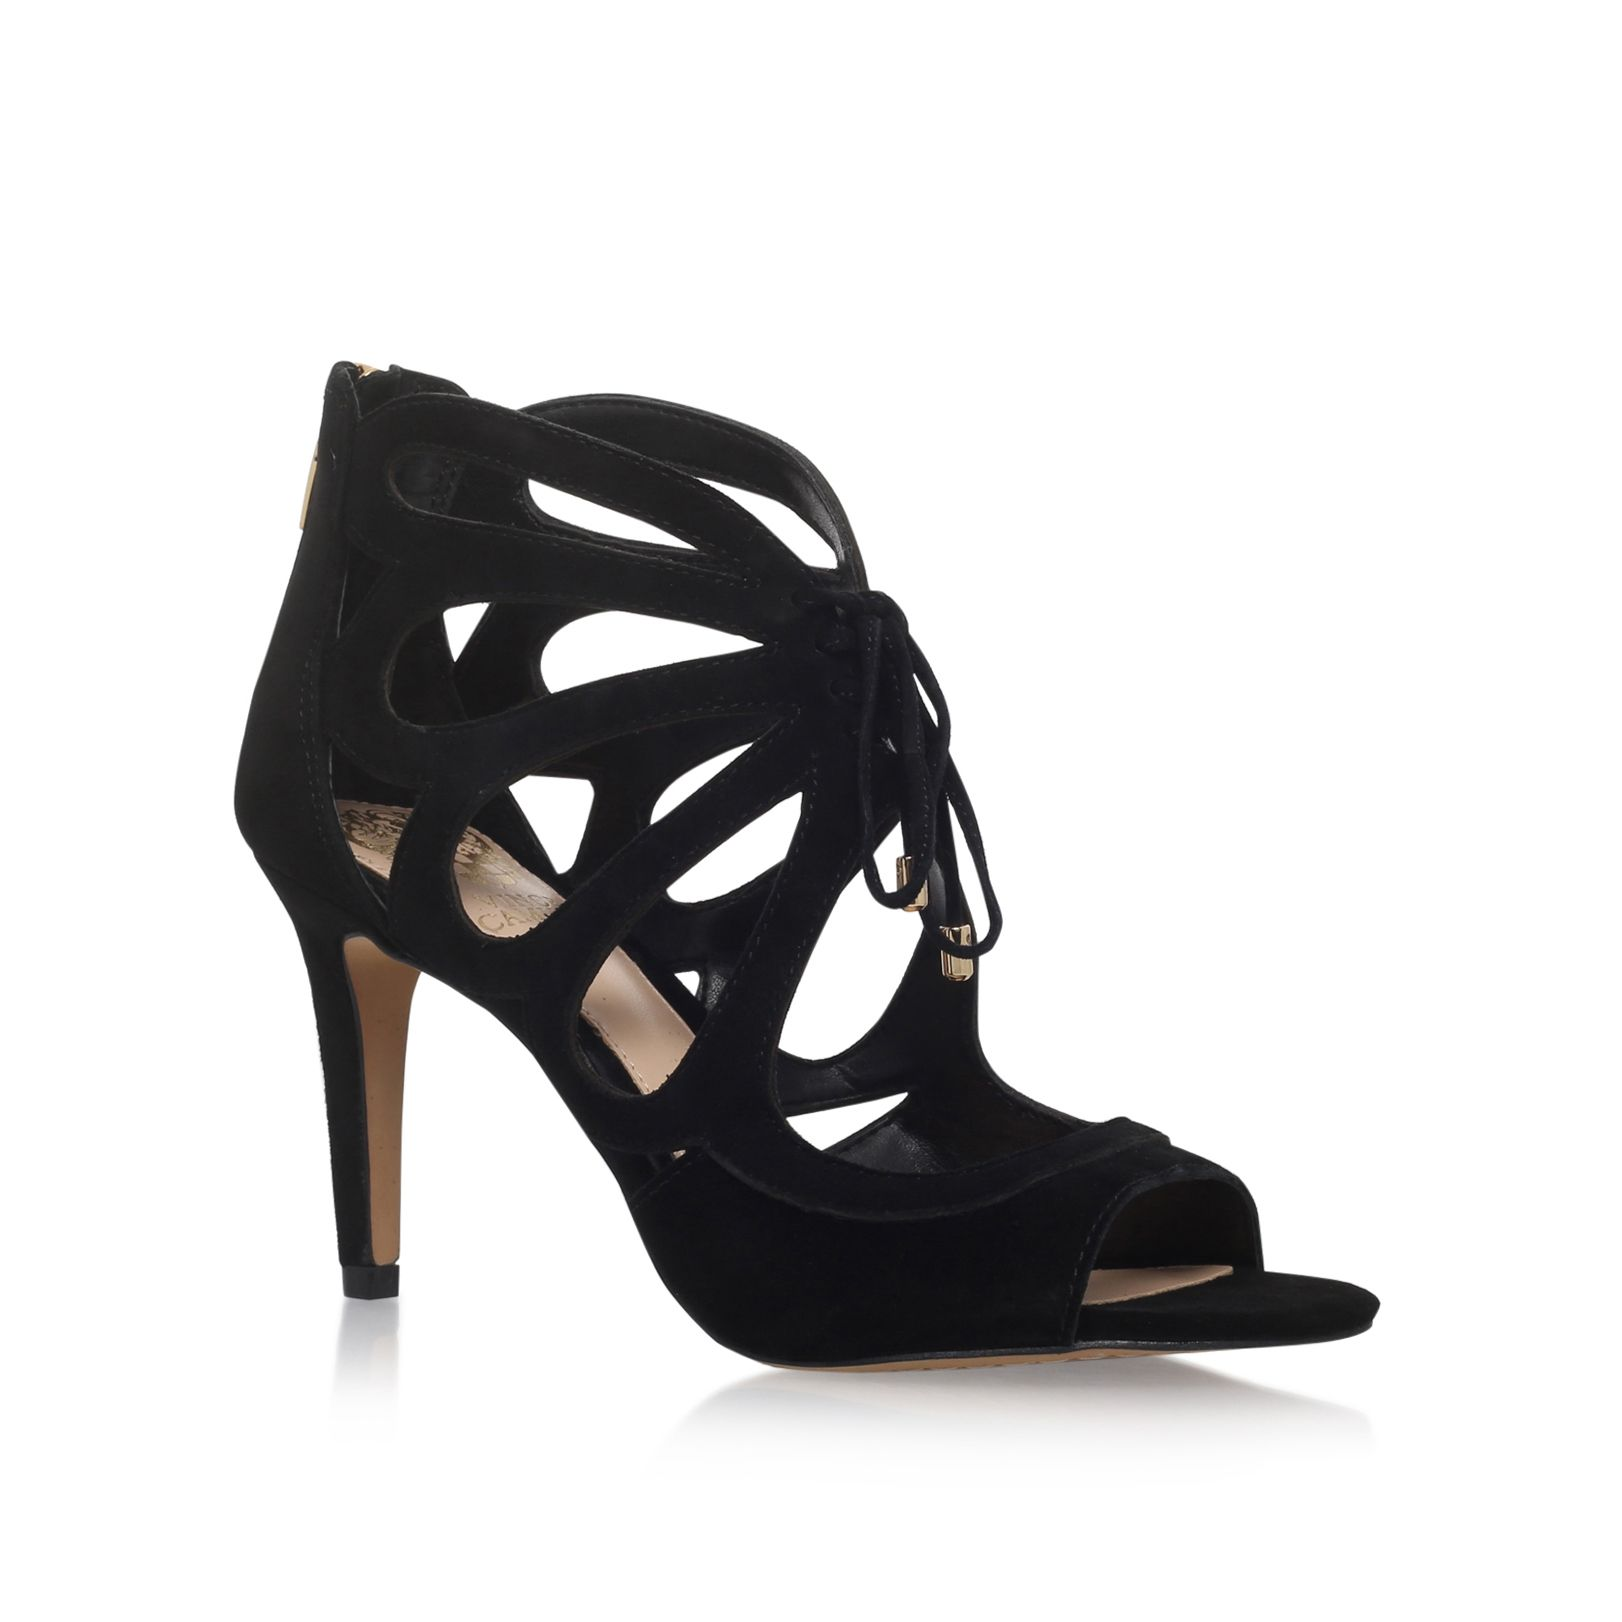 Vince Camuto Vince Camuto Calivia high heel sandals, Black